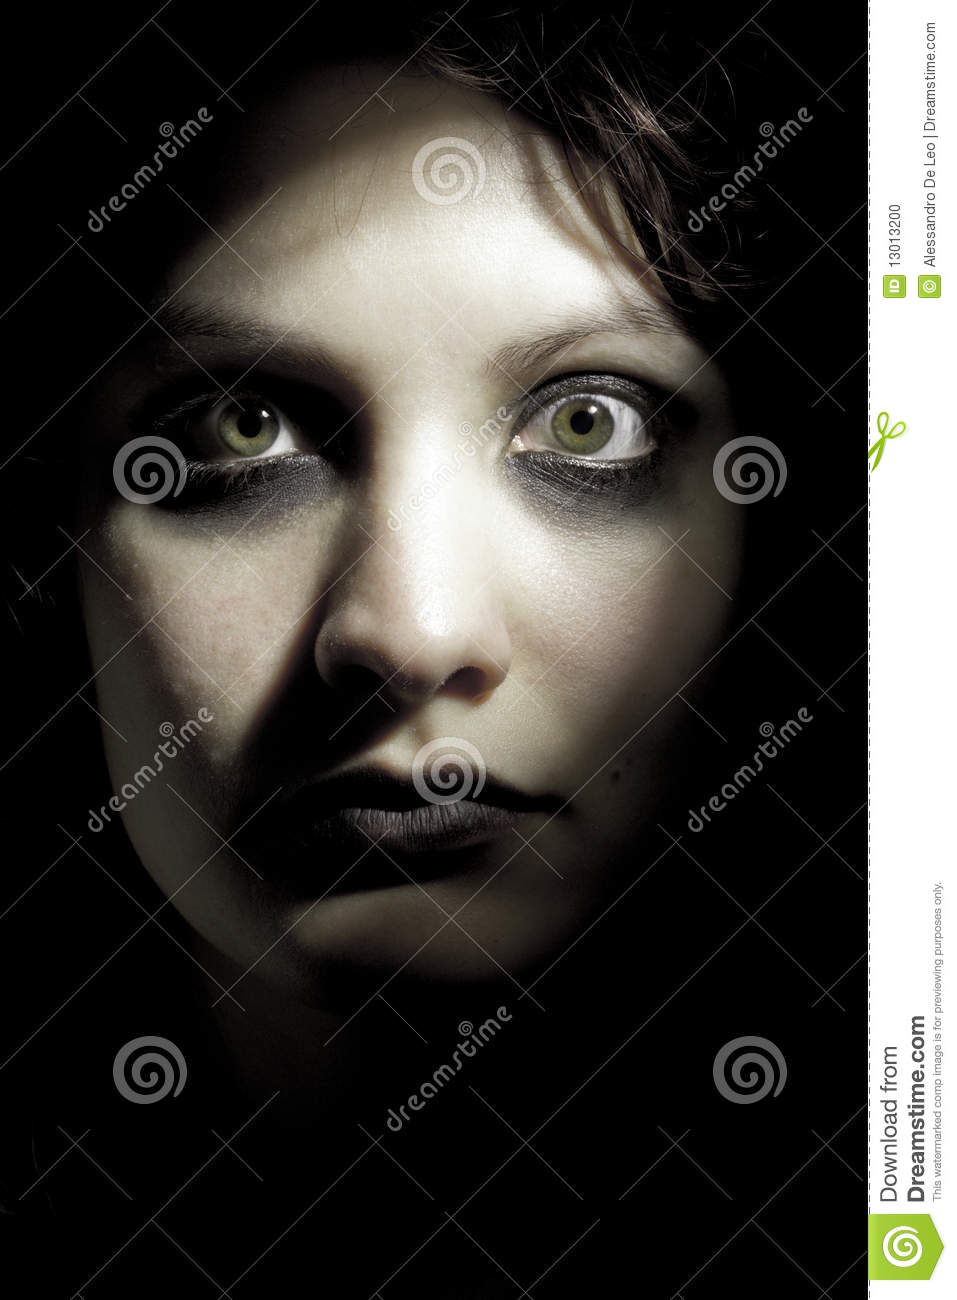 Horror Girl Stock Photo Image 13013200